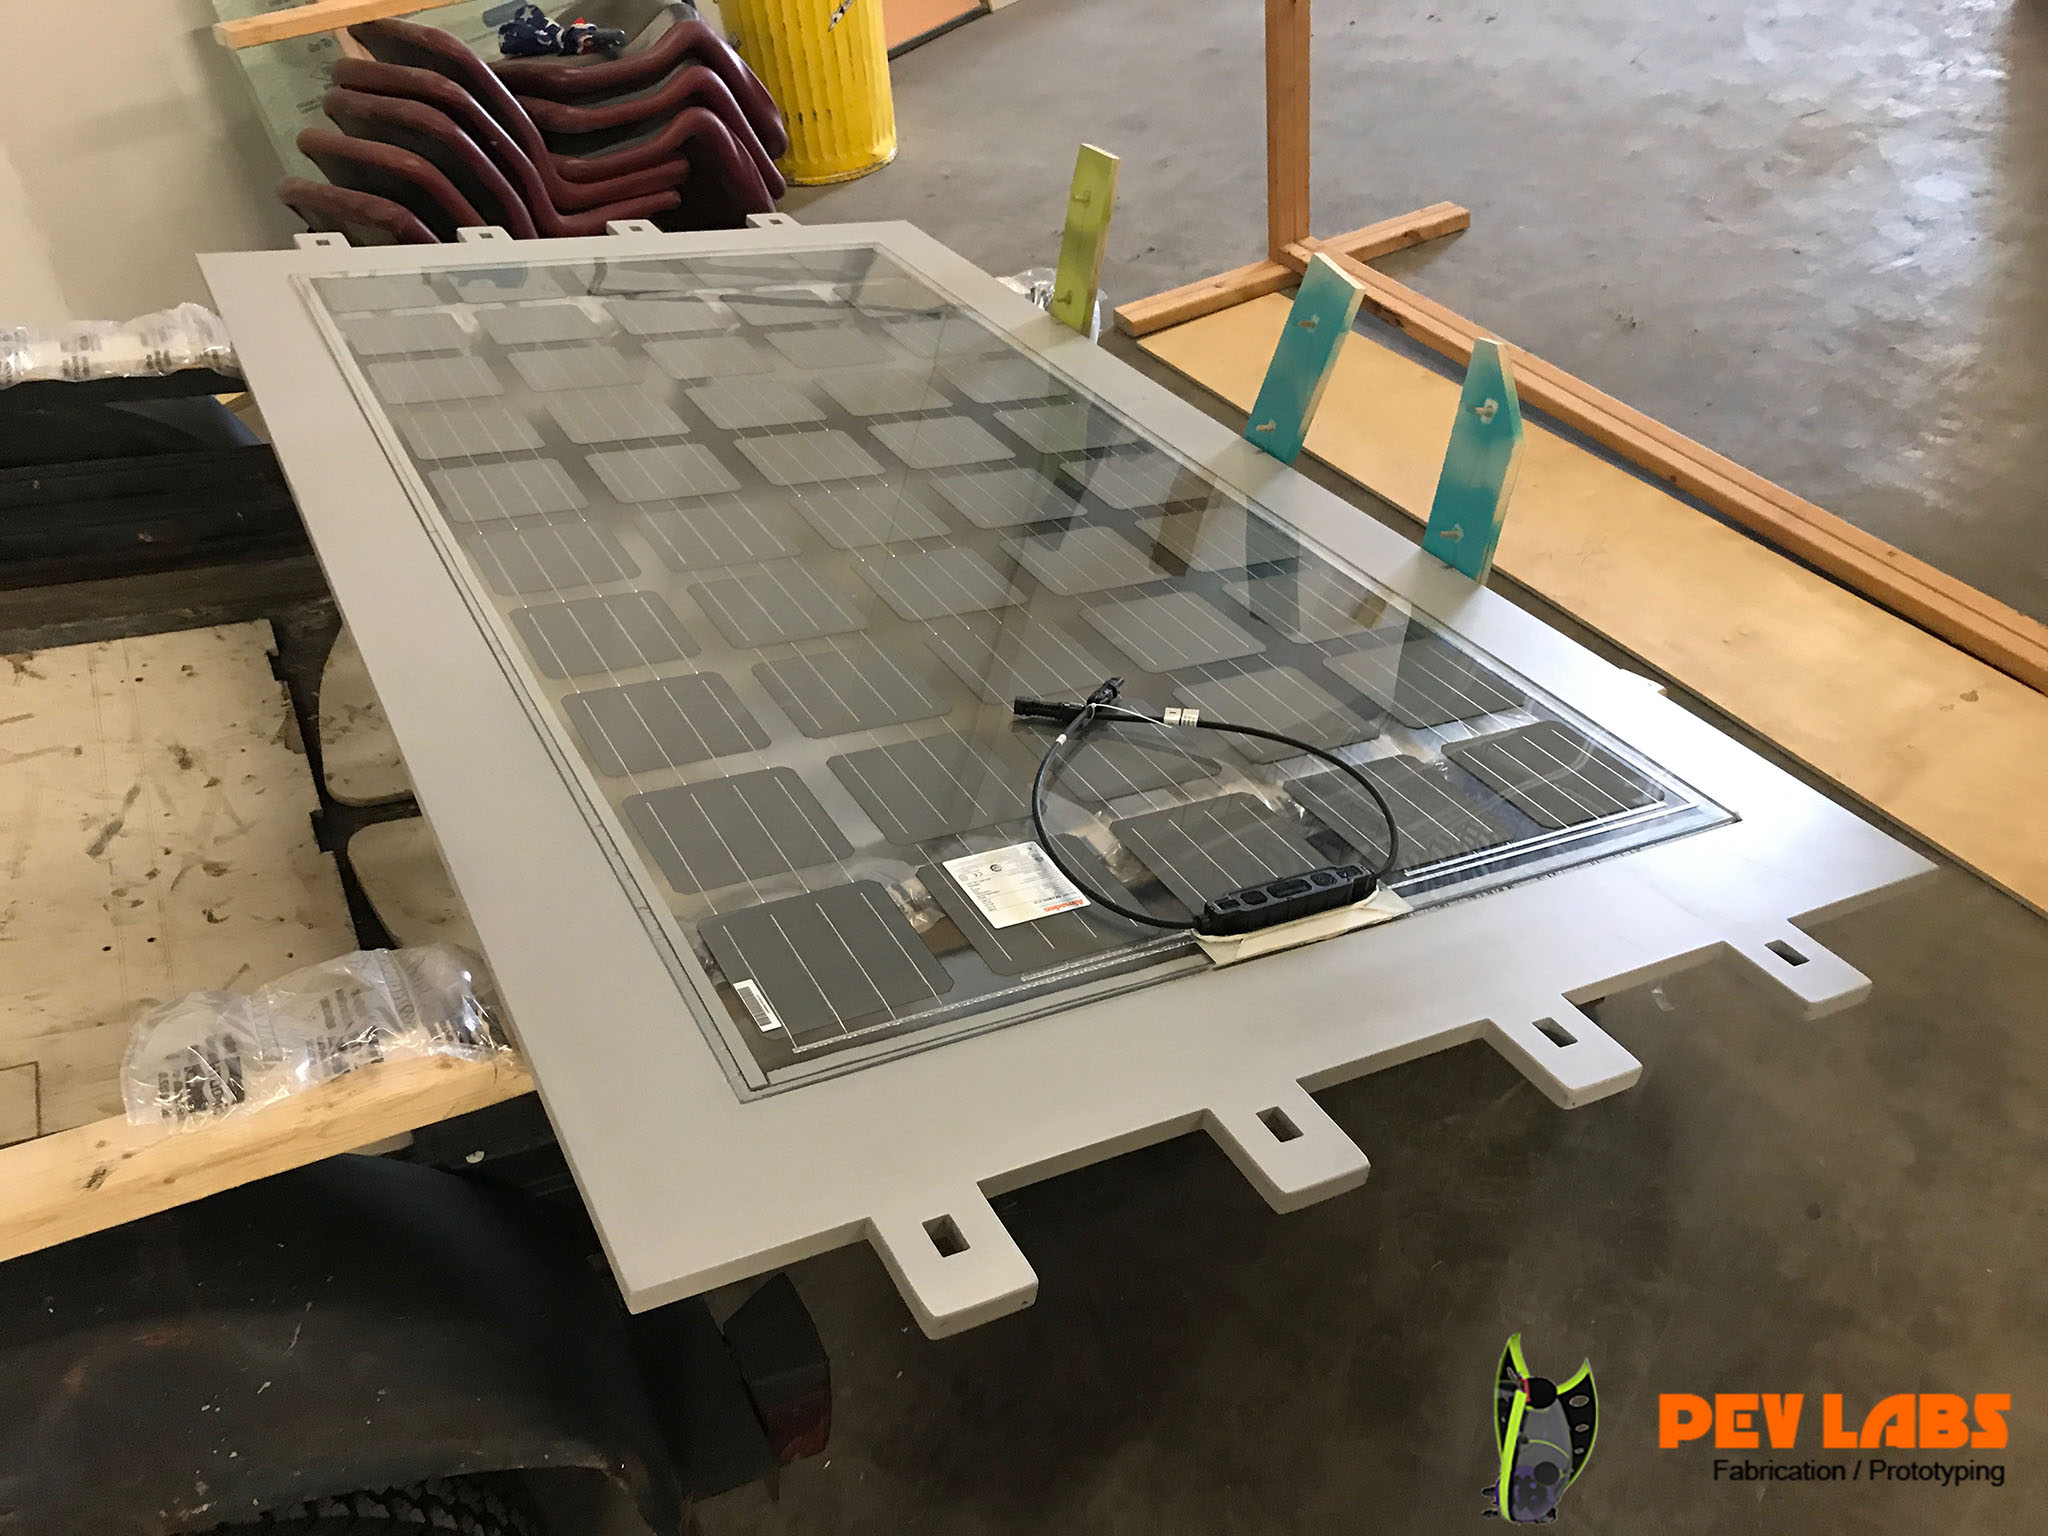 Transparent Solar Panel Kiosk Roof Prototype